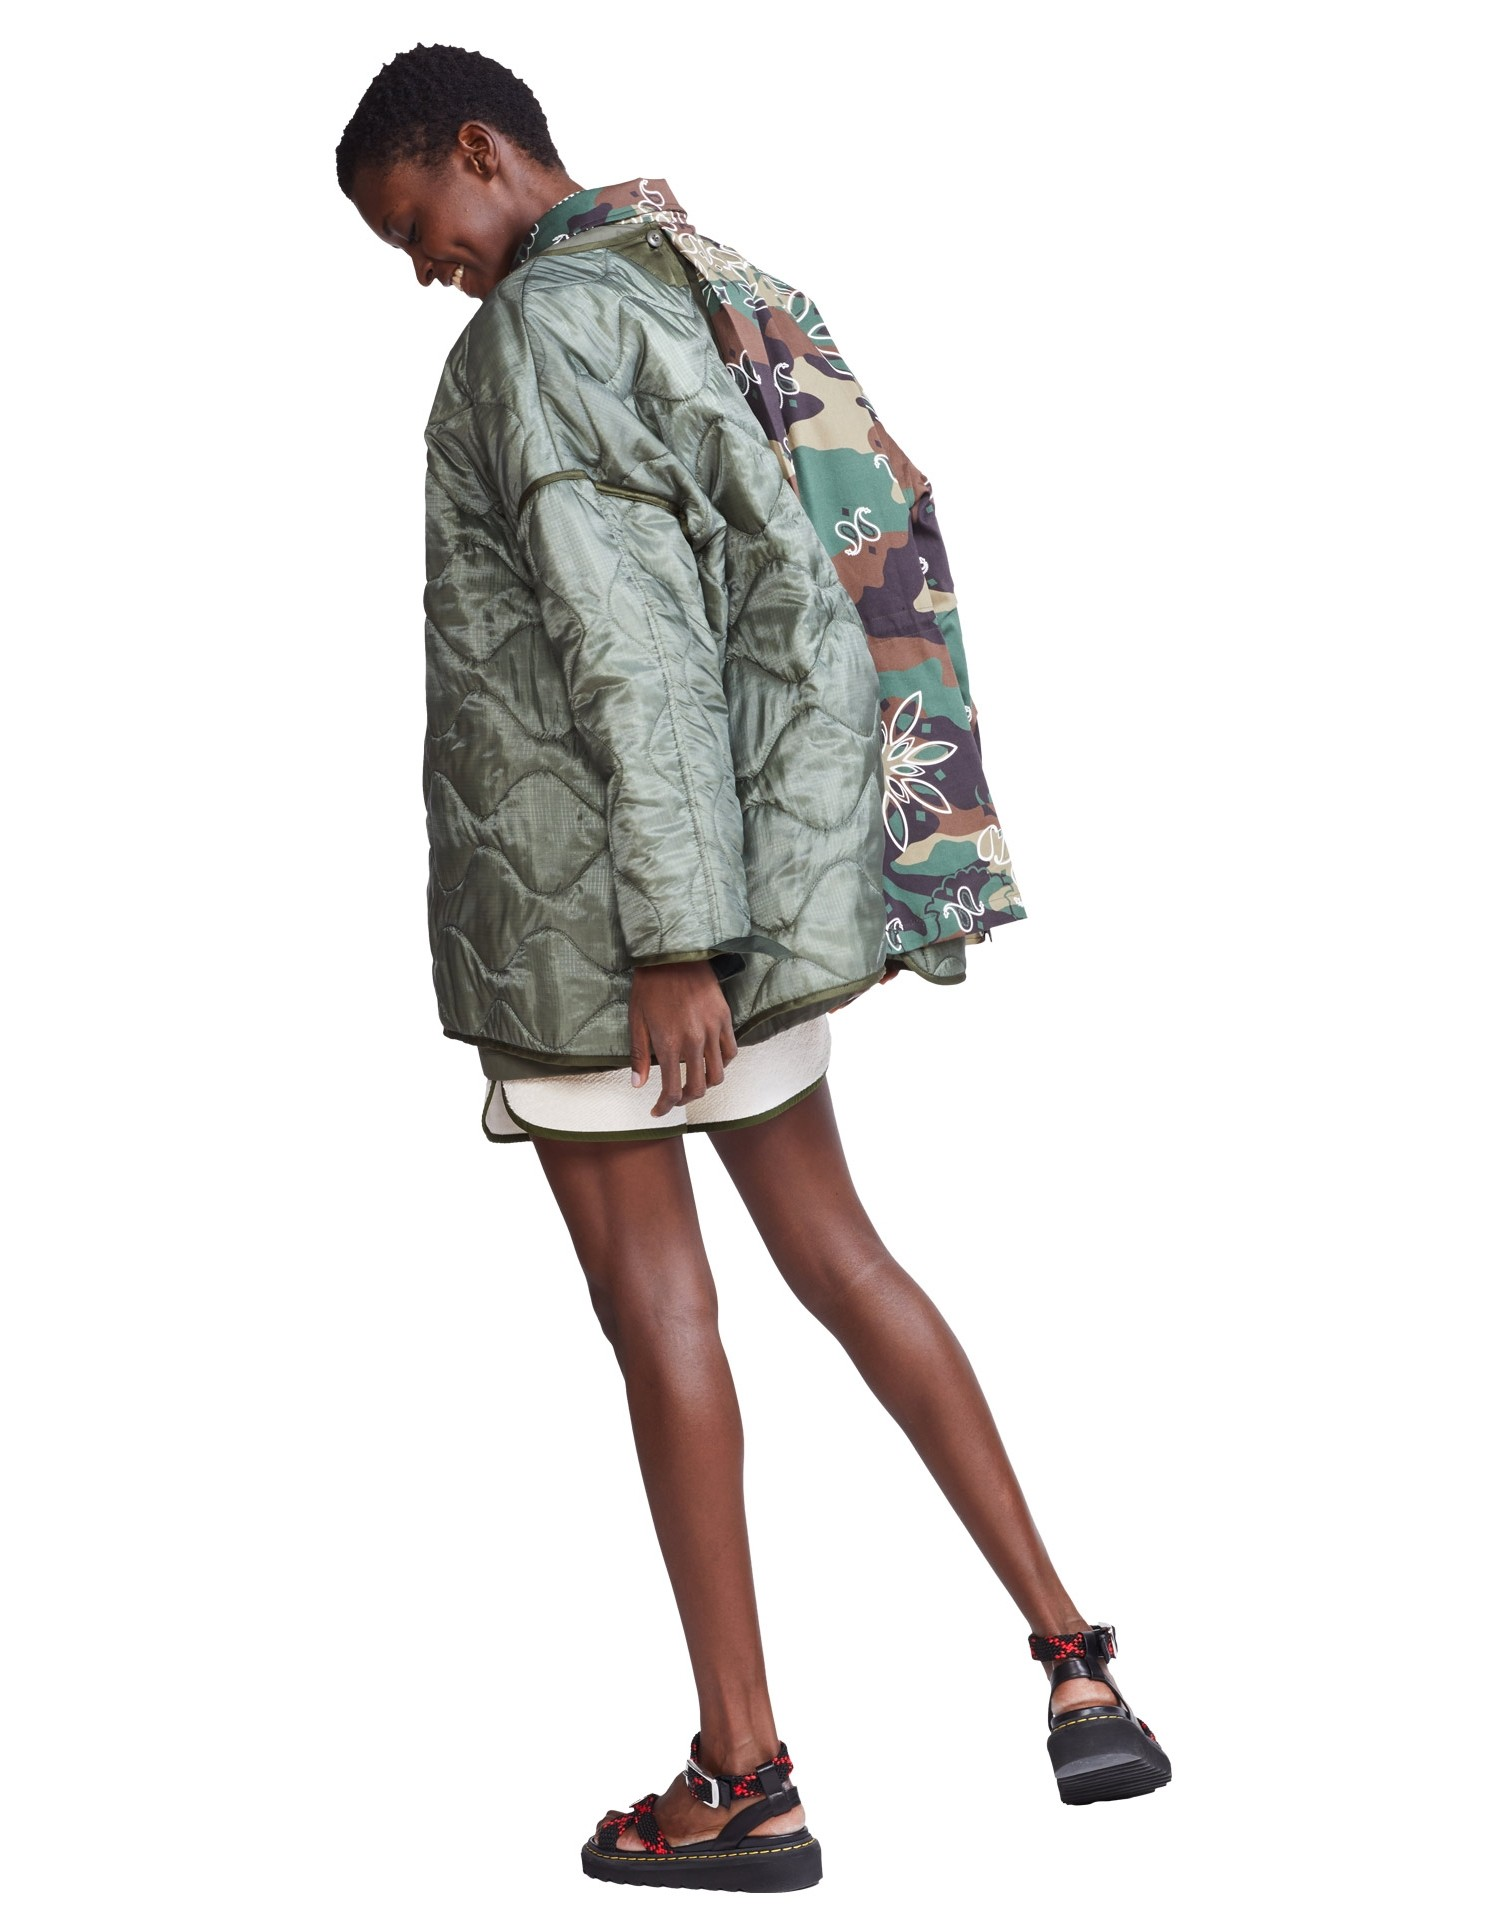 MONSE Oversized Double Camo Jacket on Model Side View